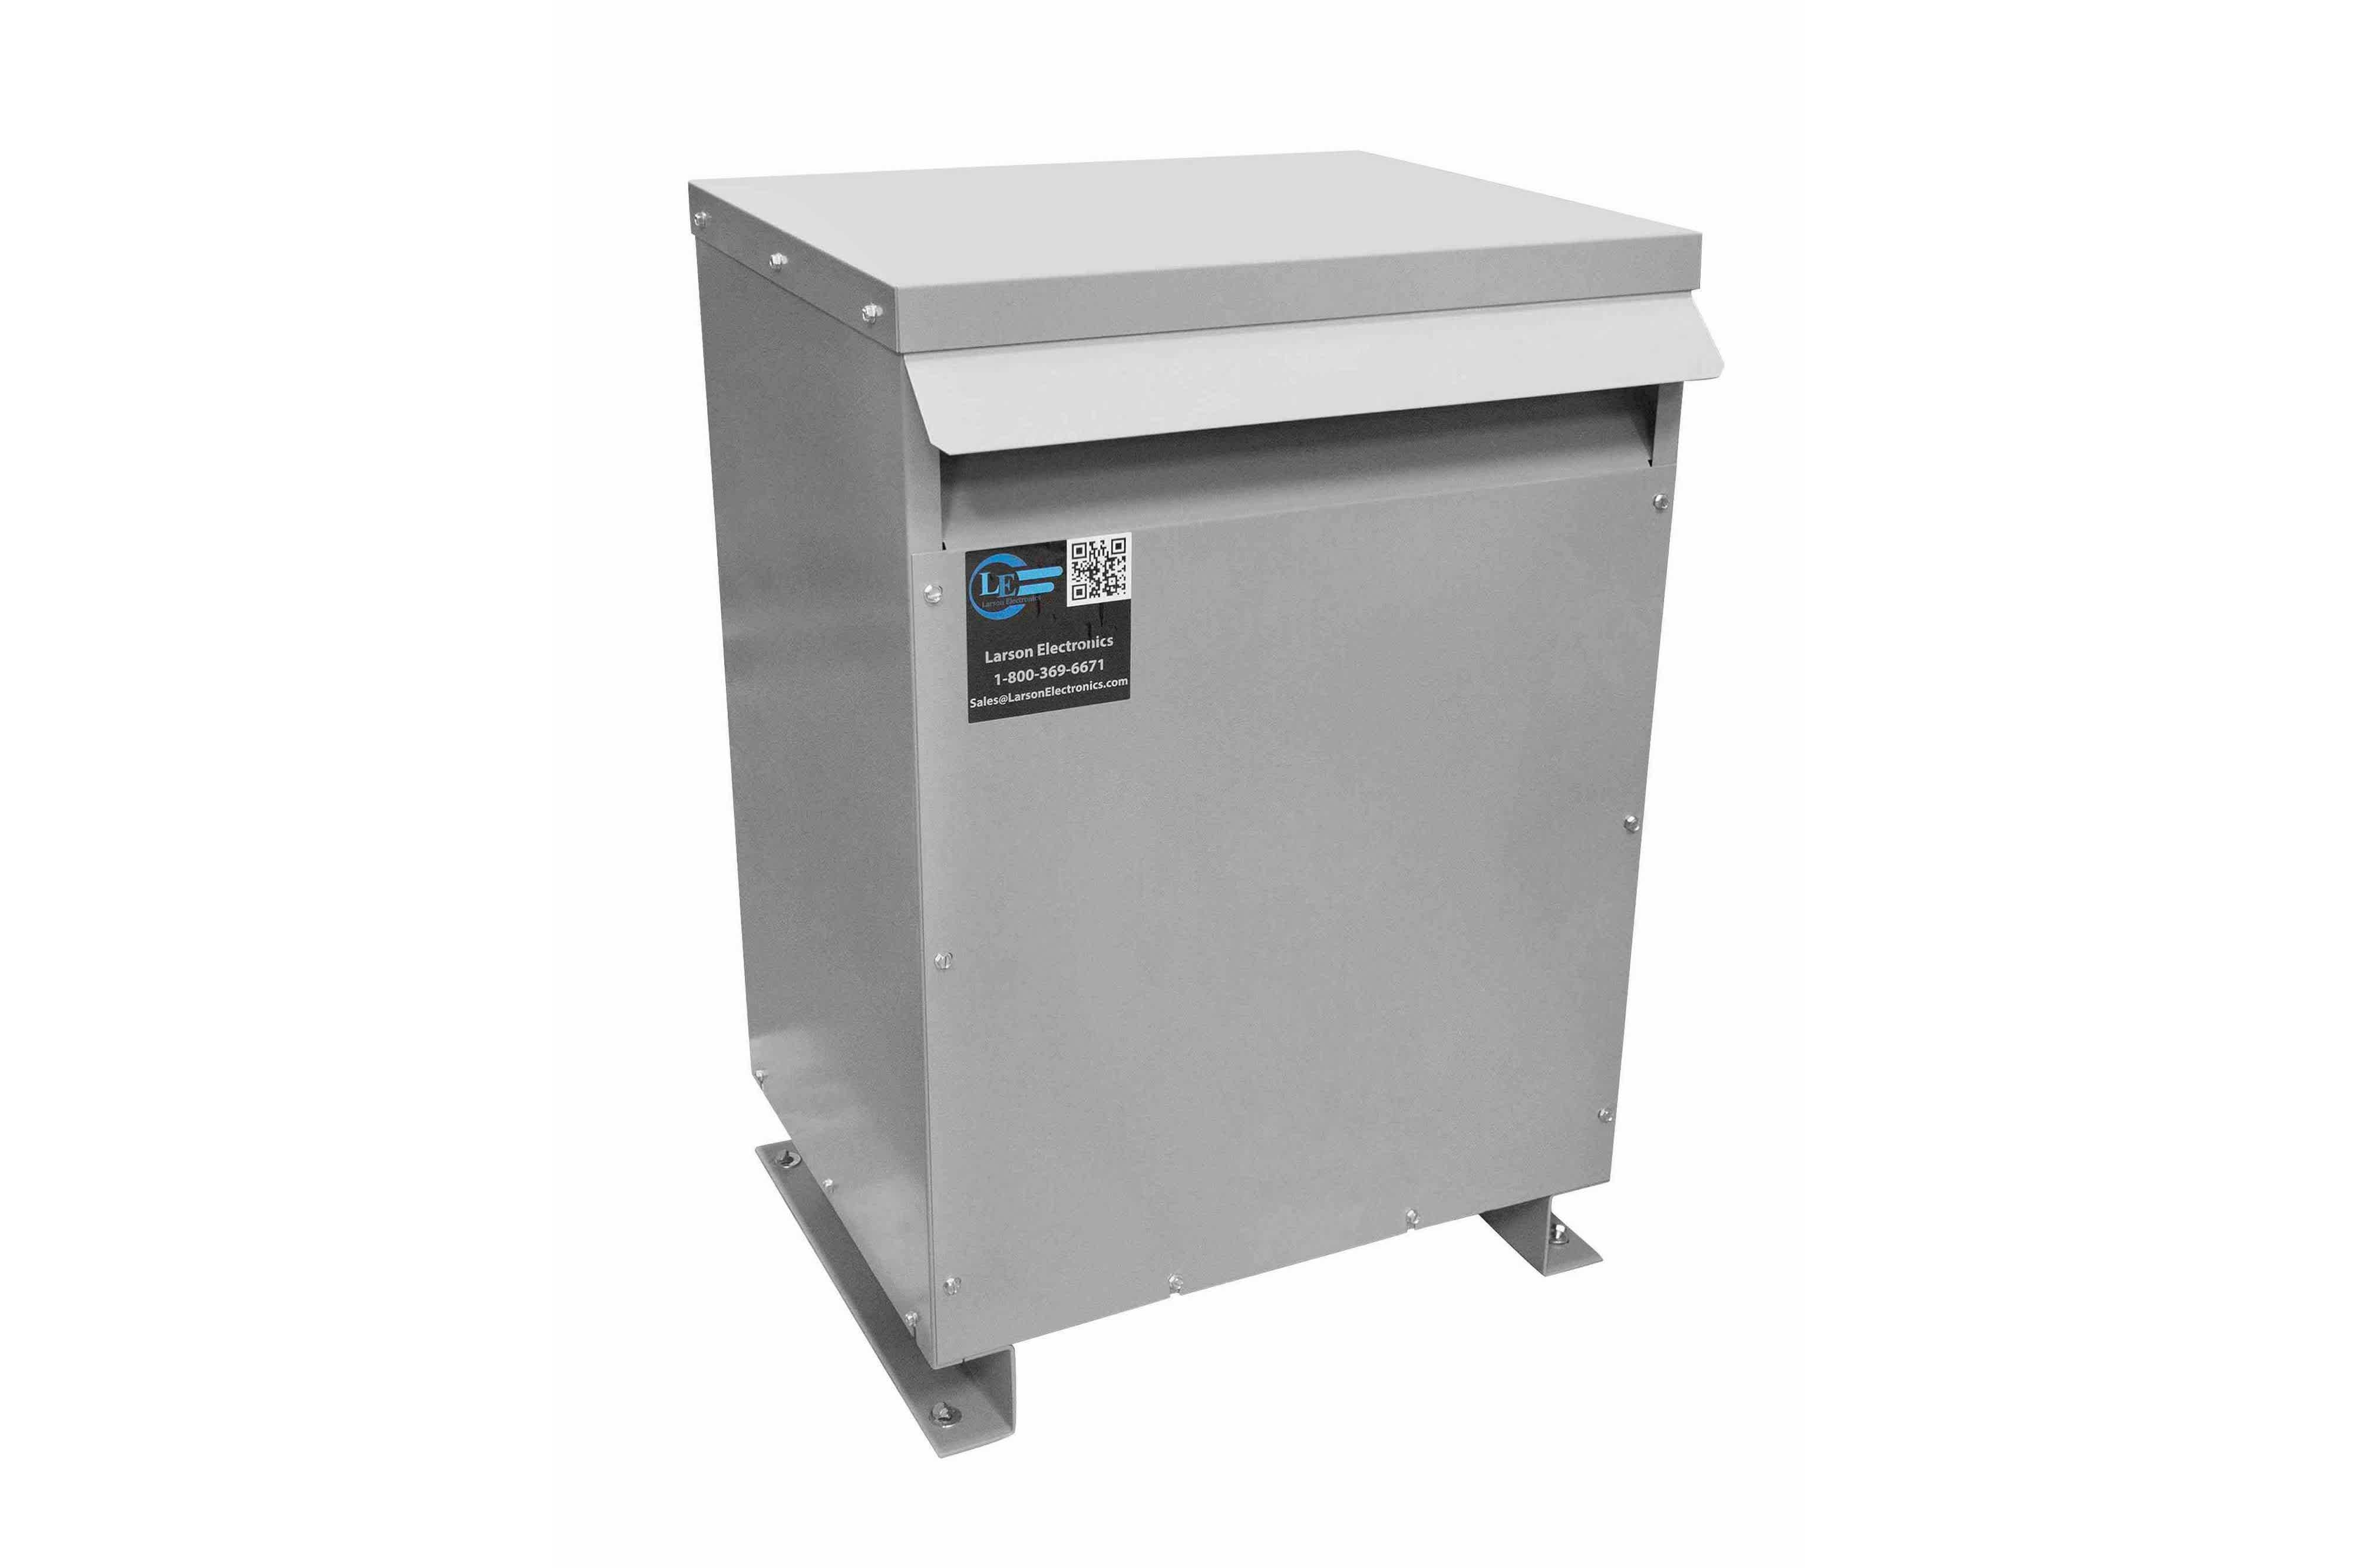 36 kVA 3PH DOE Transformer, 415V Delta Primary, 480Y/277 Wye-N Secondary, N3R, Ventilated, 60 Hz